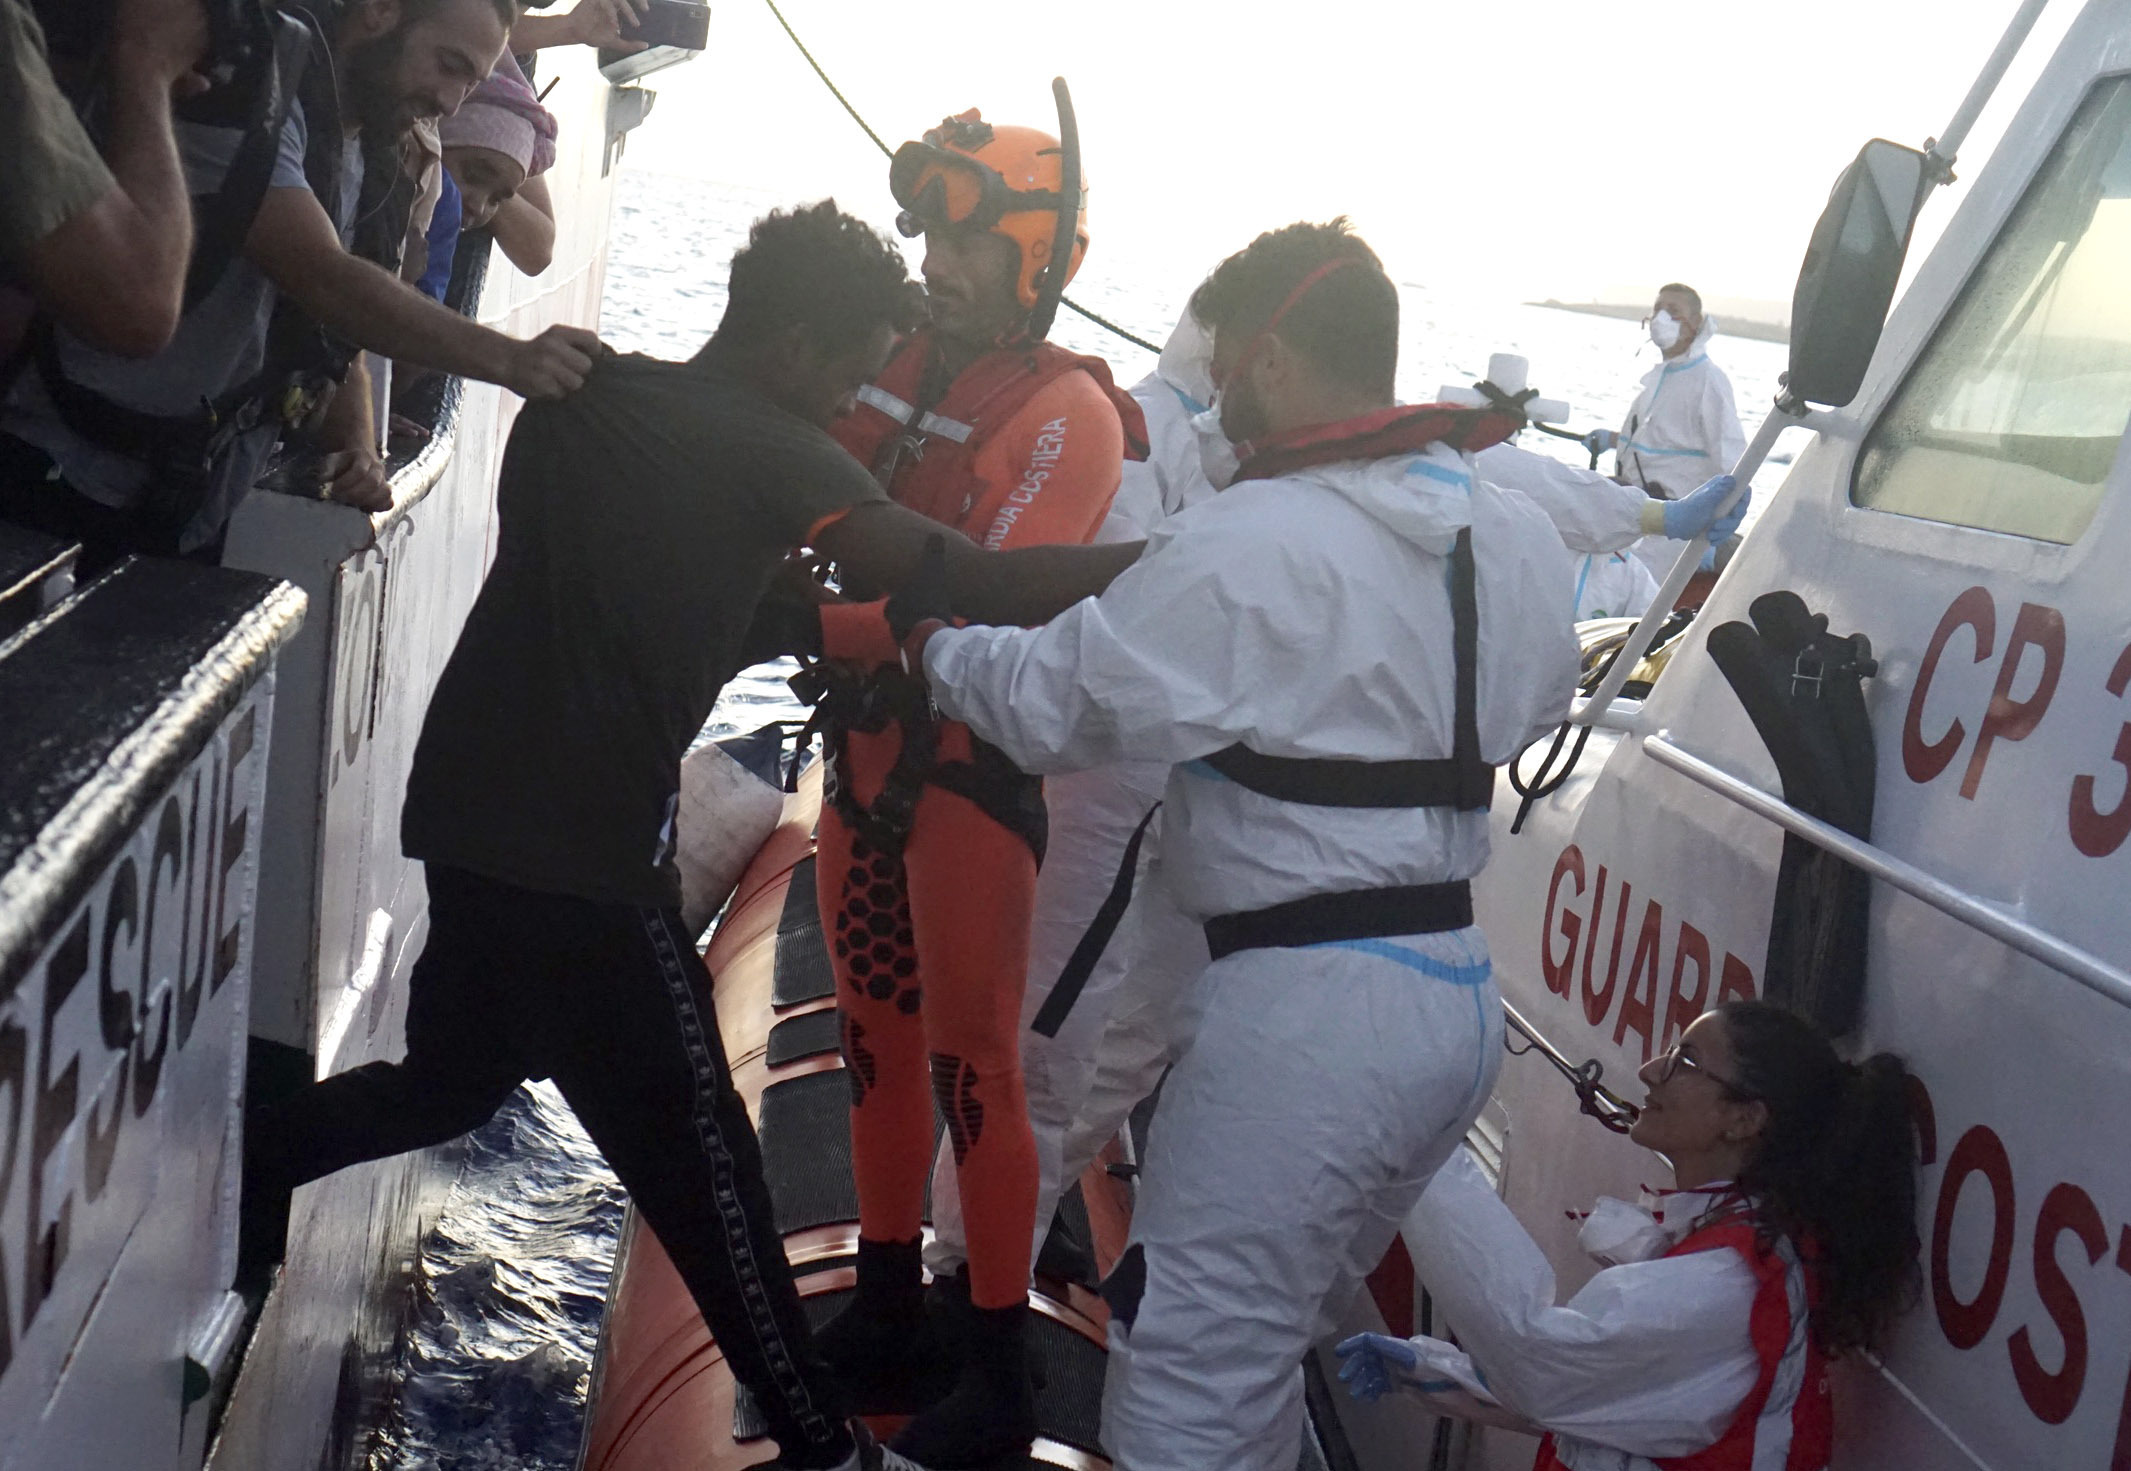 Aid group: Italy must let all migrants off rescue ship